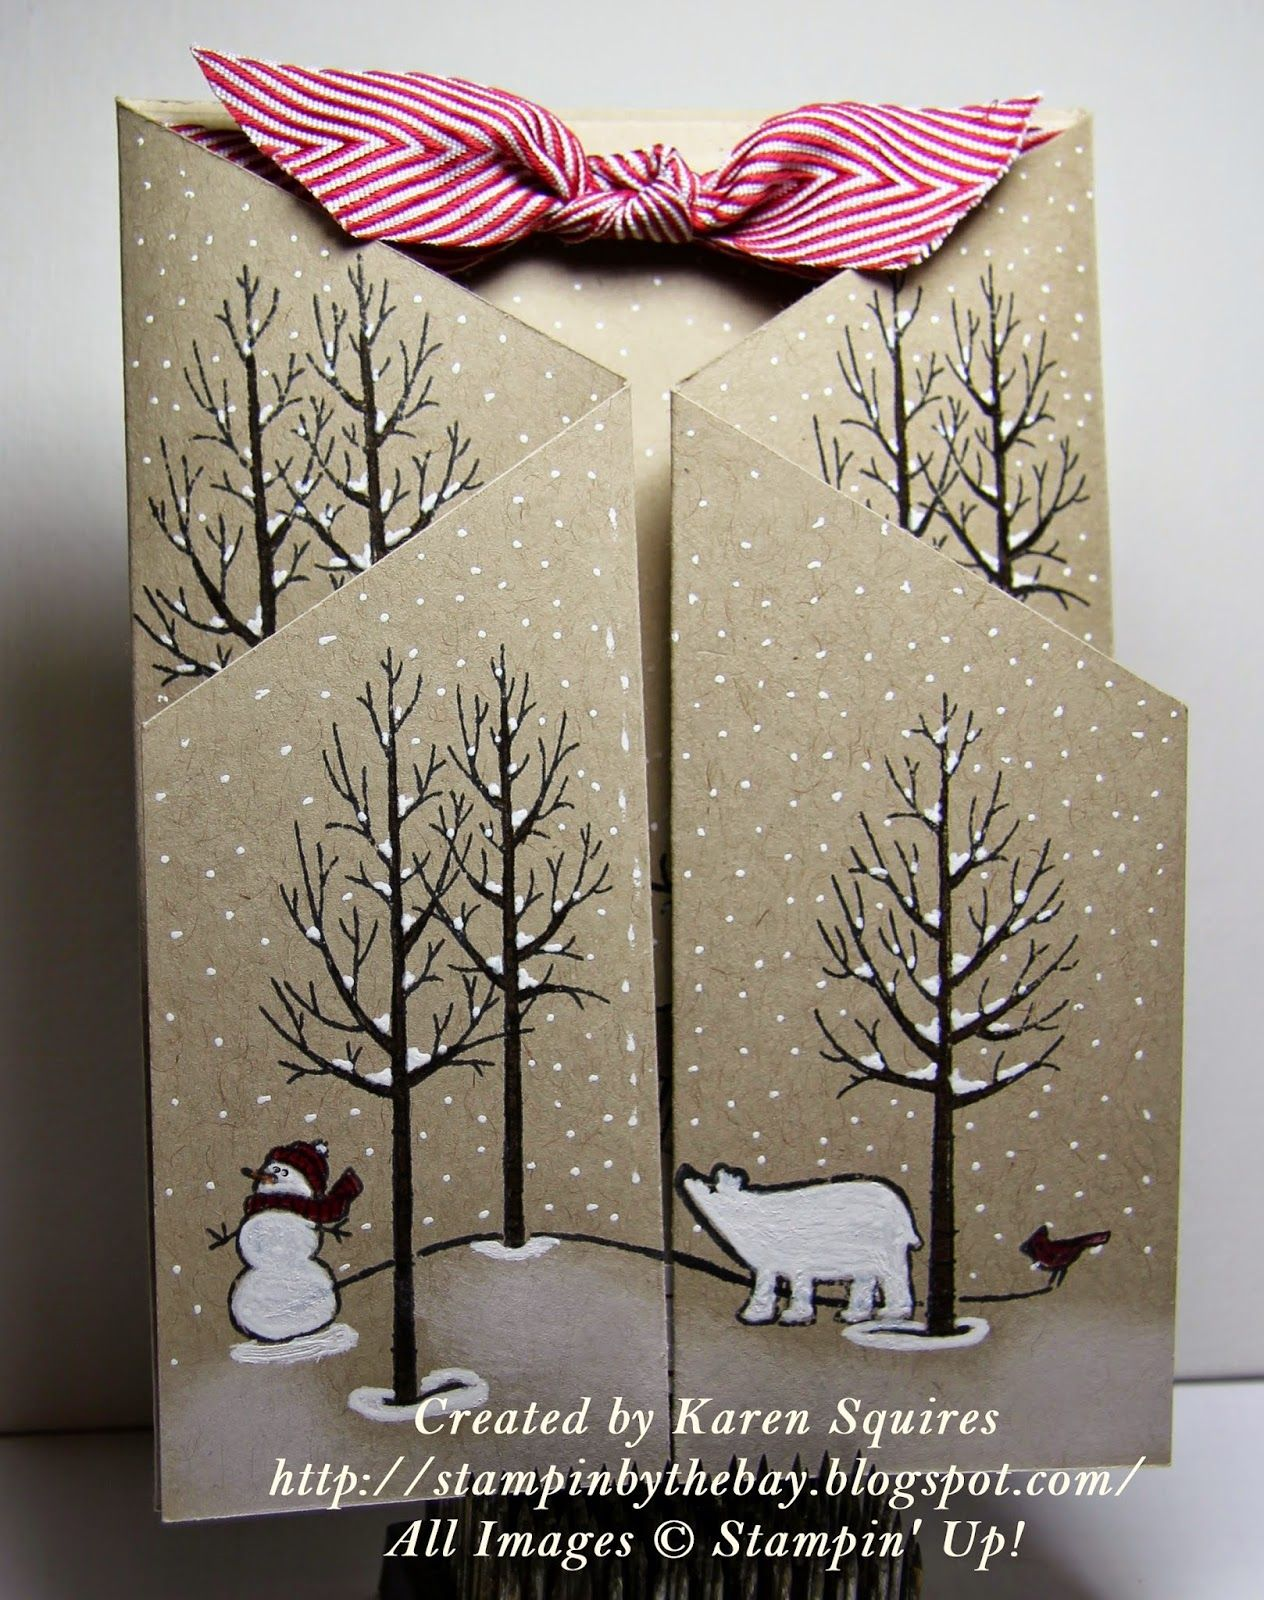 "Stampin"" Up! ... handmade winter card fro Stampin' By The Bay: White Christmas Stand Up Card ... luv the look of black and white stamping on kraft ... looks like a double cascade gate card ... snow scene ... white snow on bare branches ... gorgeous!"